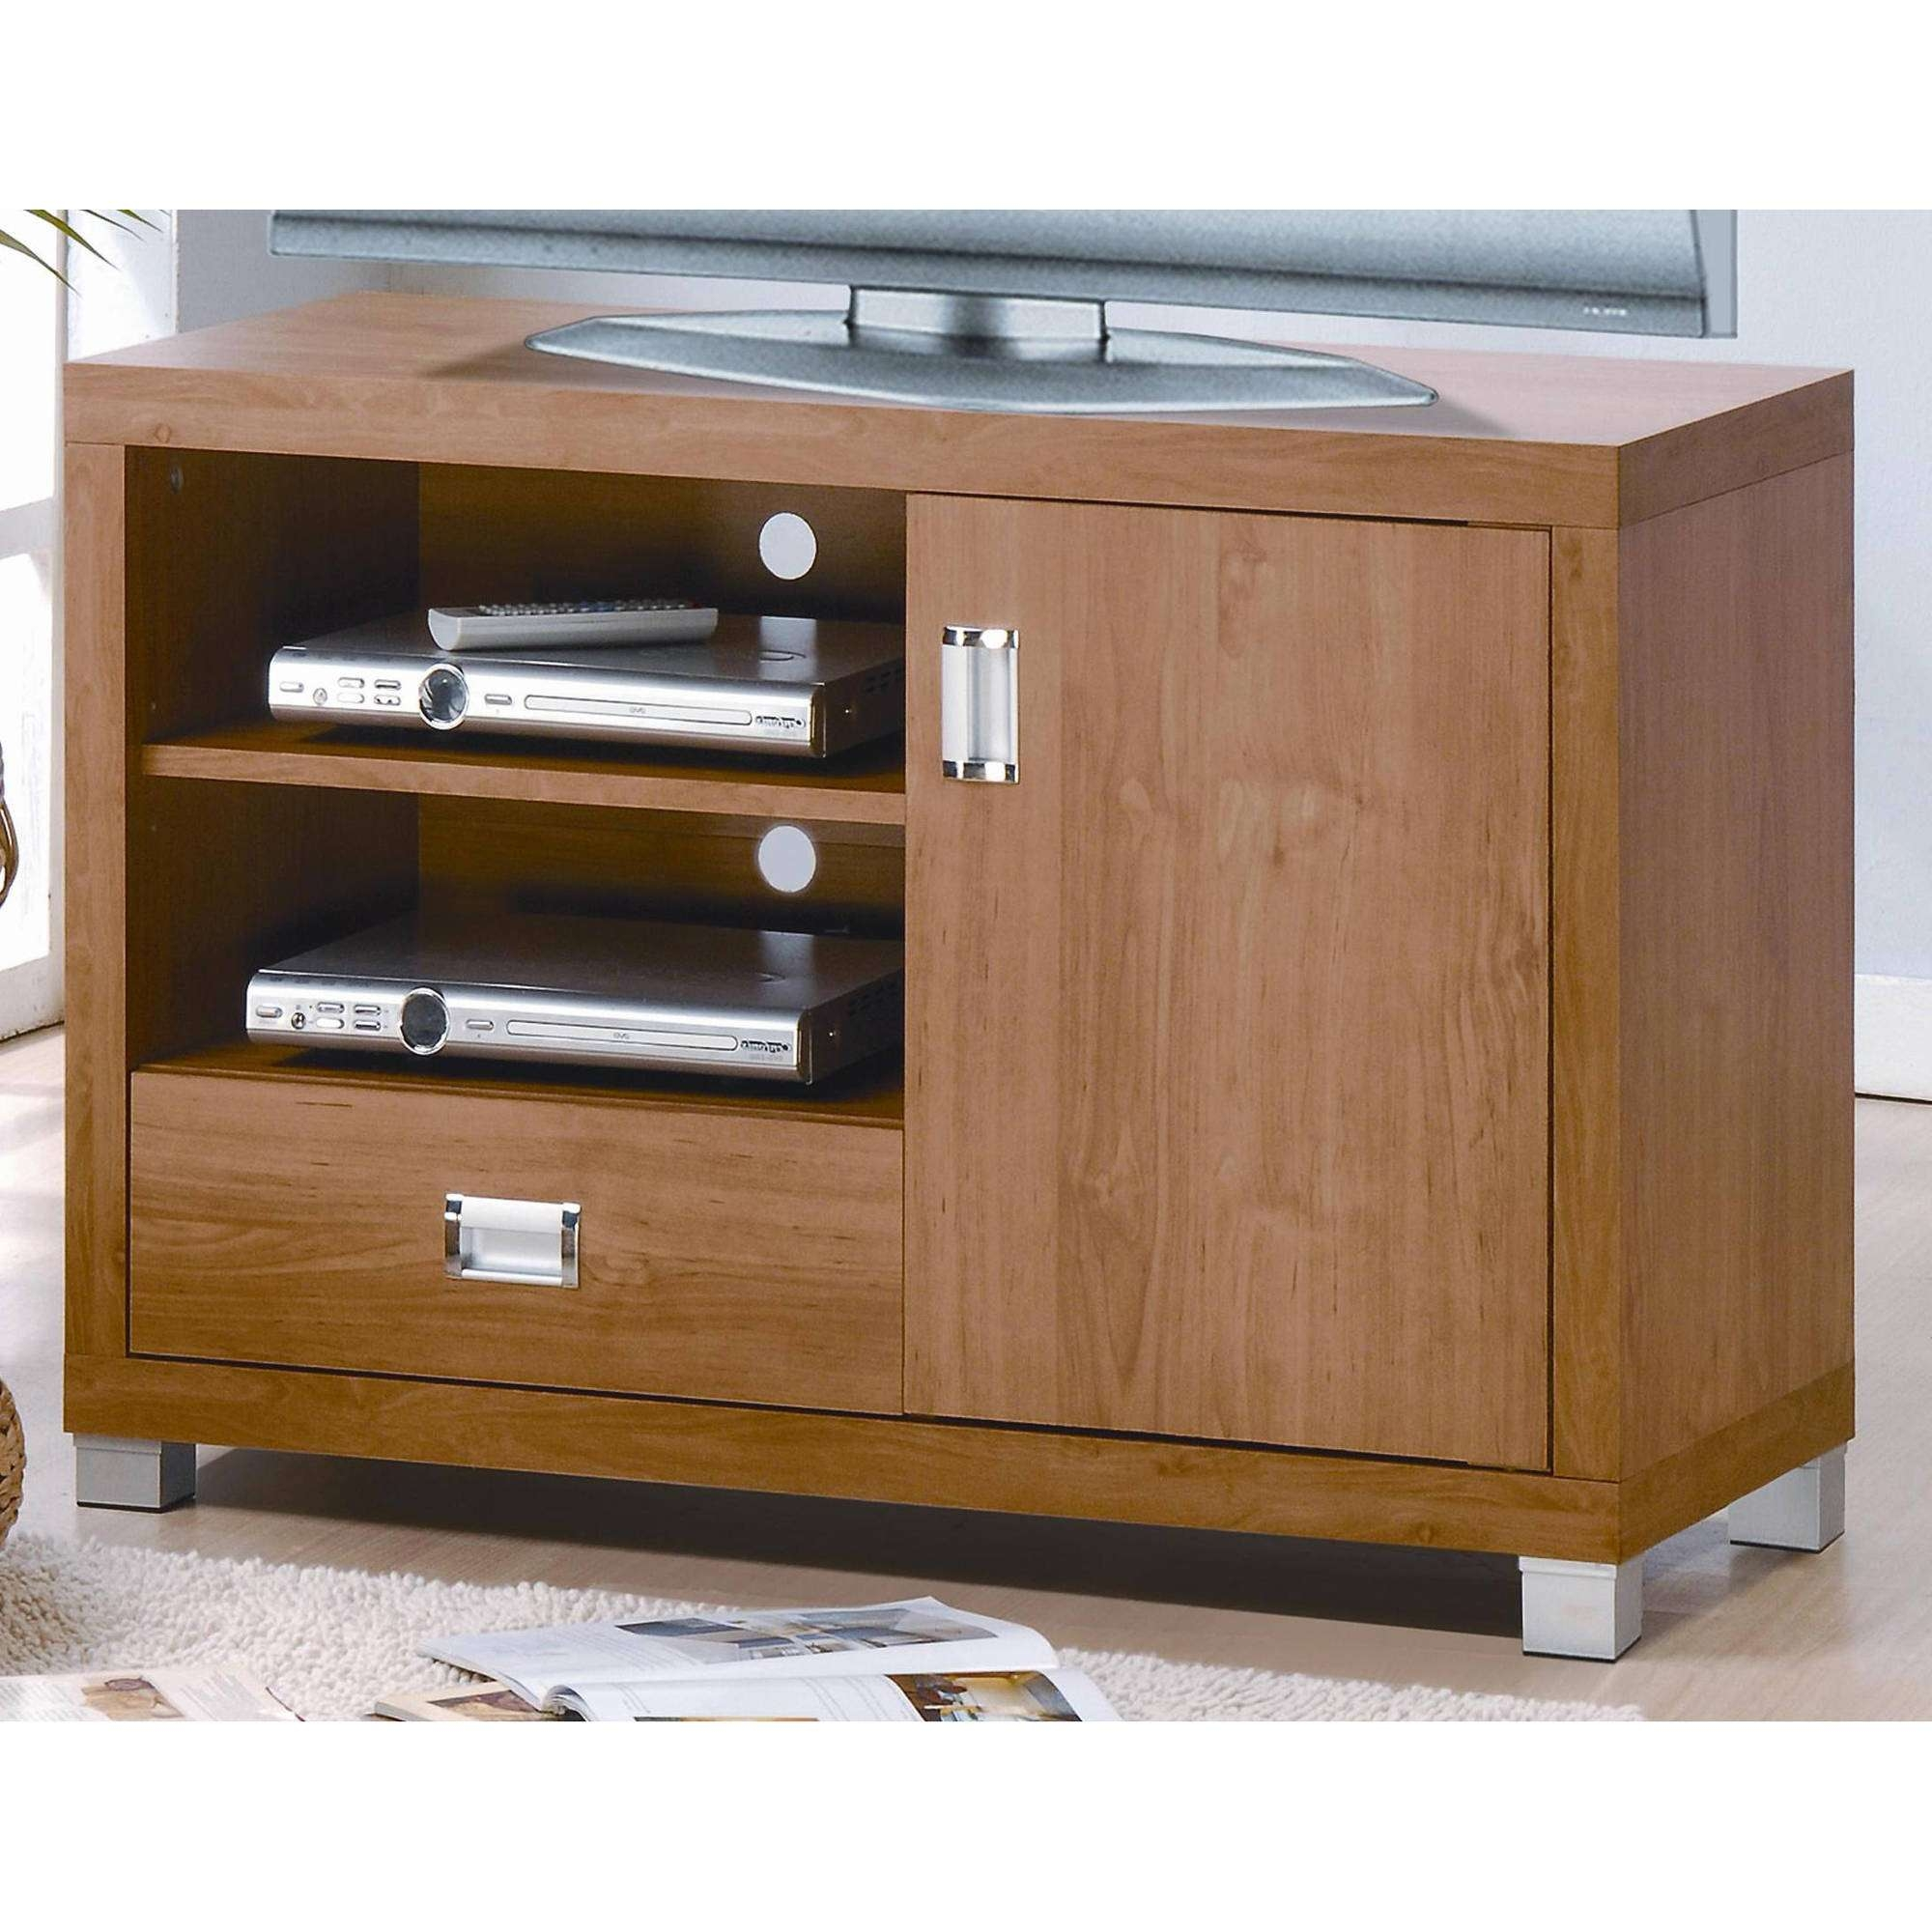 Techni Mobili Tv Cabinet, Maple – Walmart Intended For Maple Tv Cabinets (View 15 of 20)